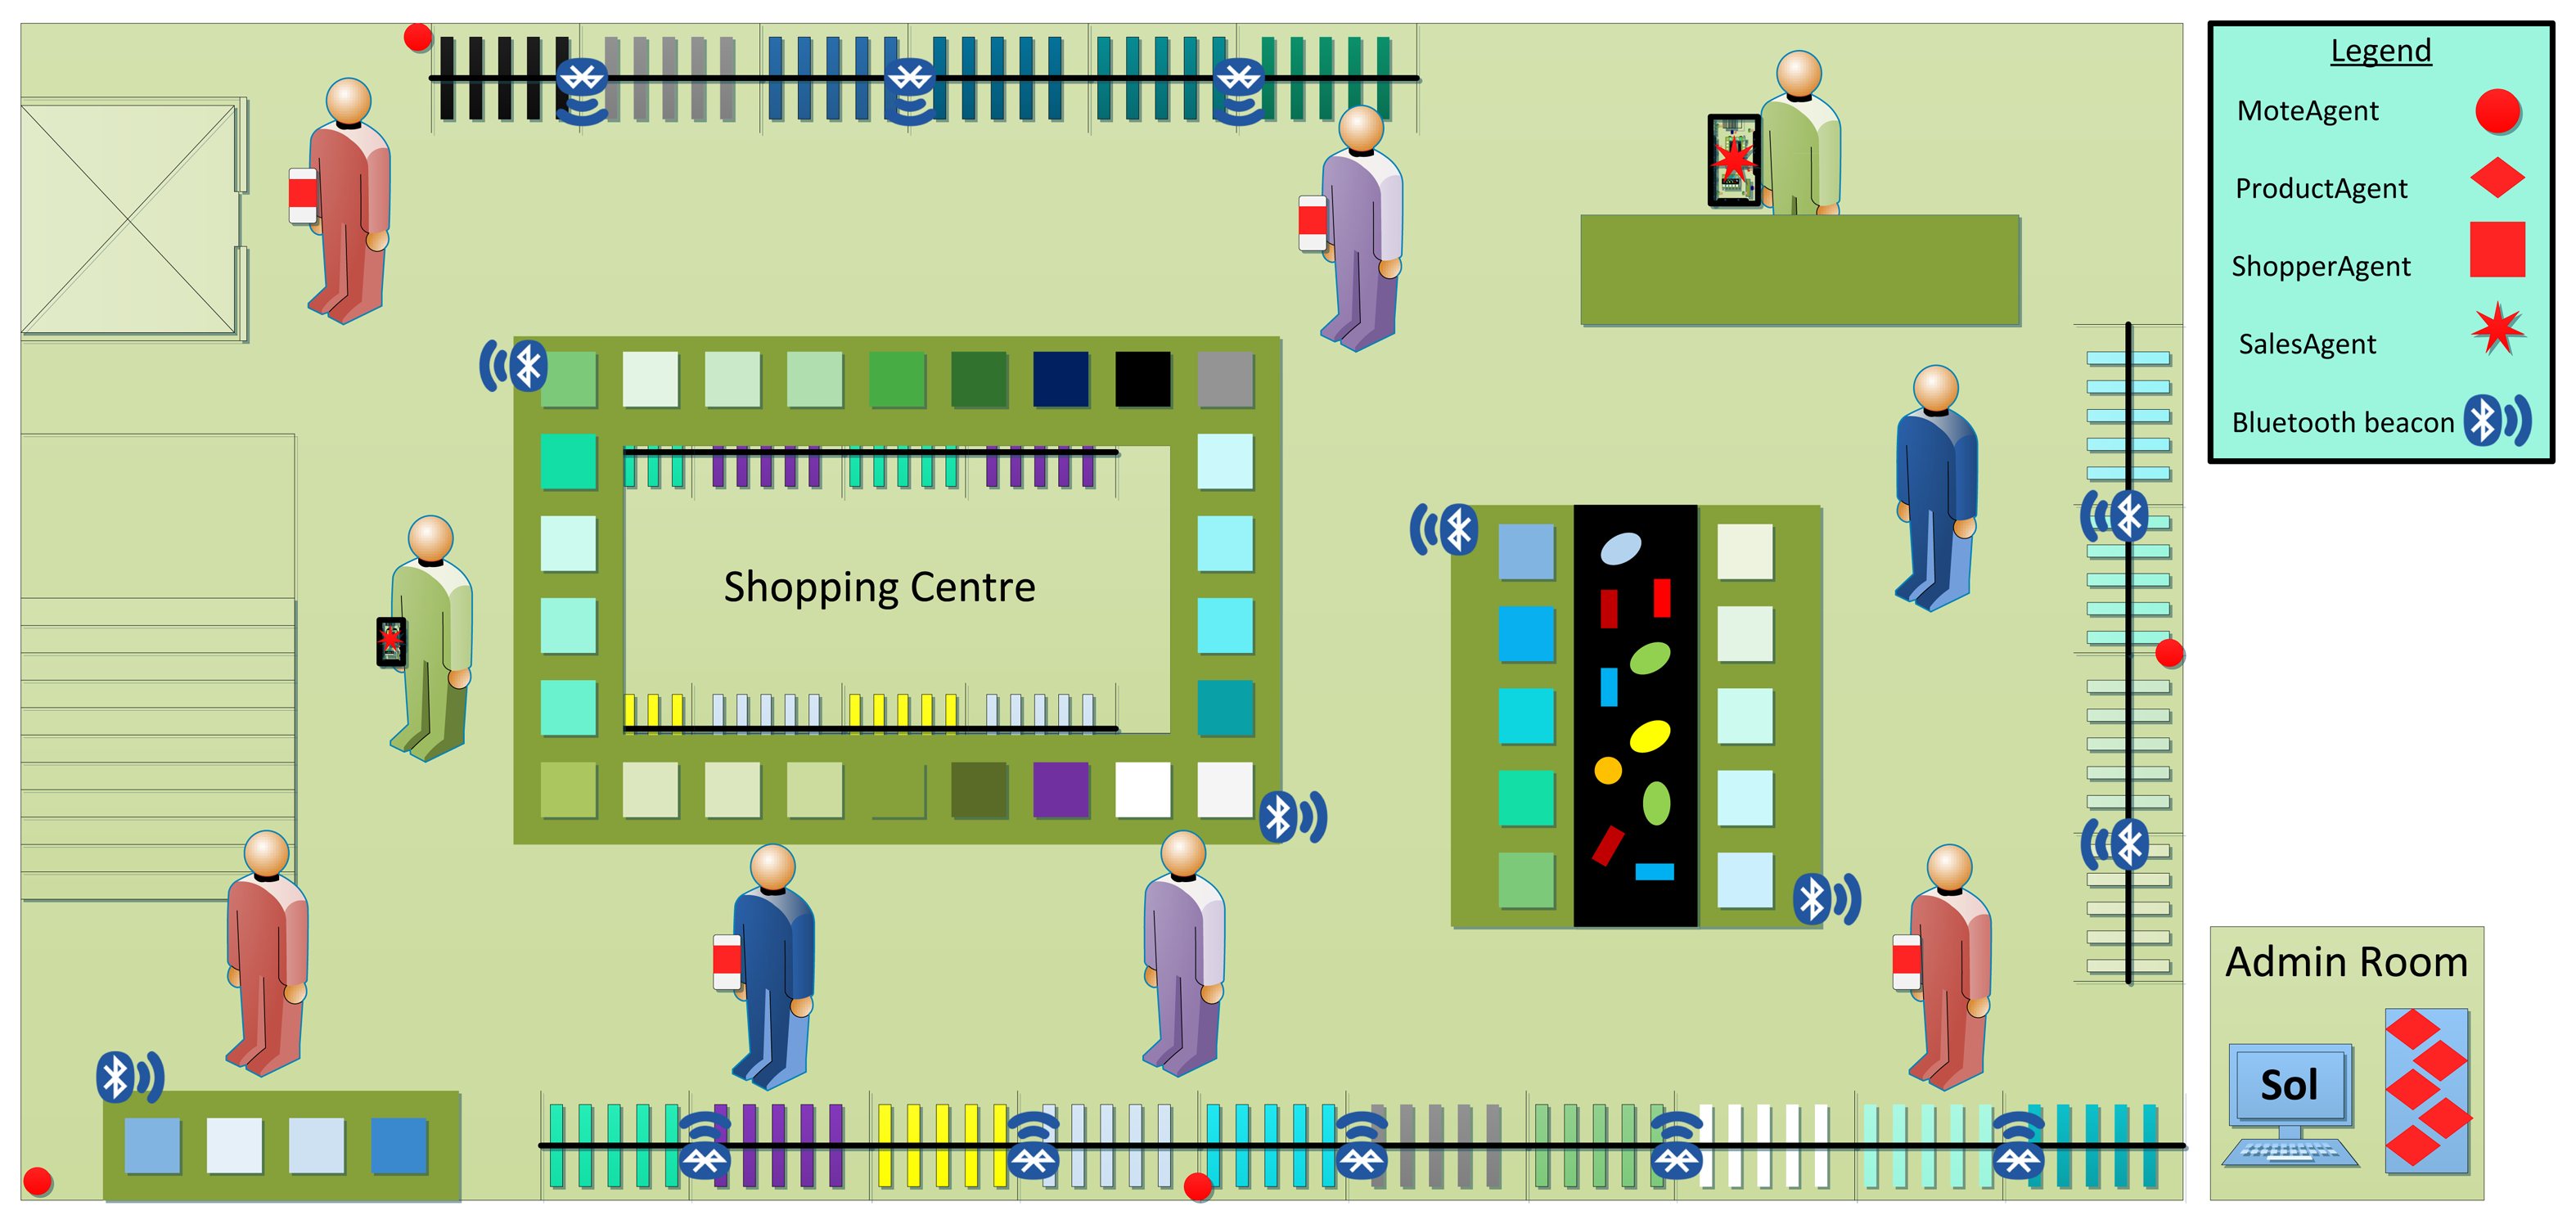 Overview of the multi-agent system of the smart shopping centre